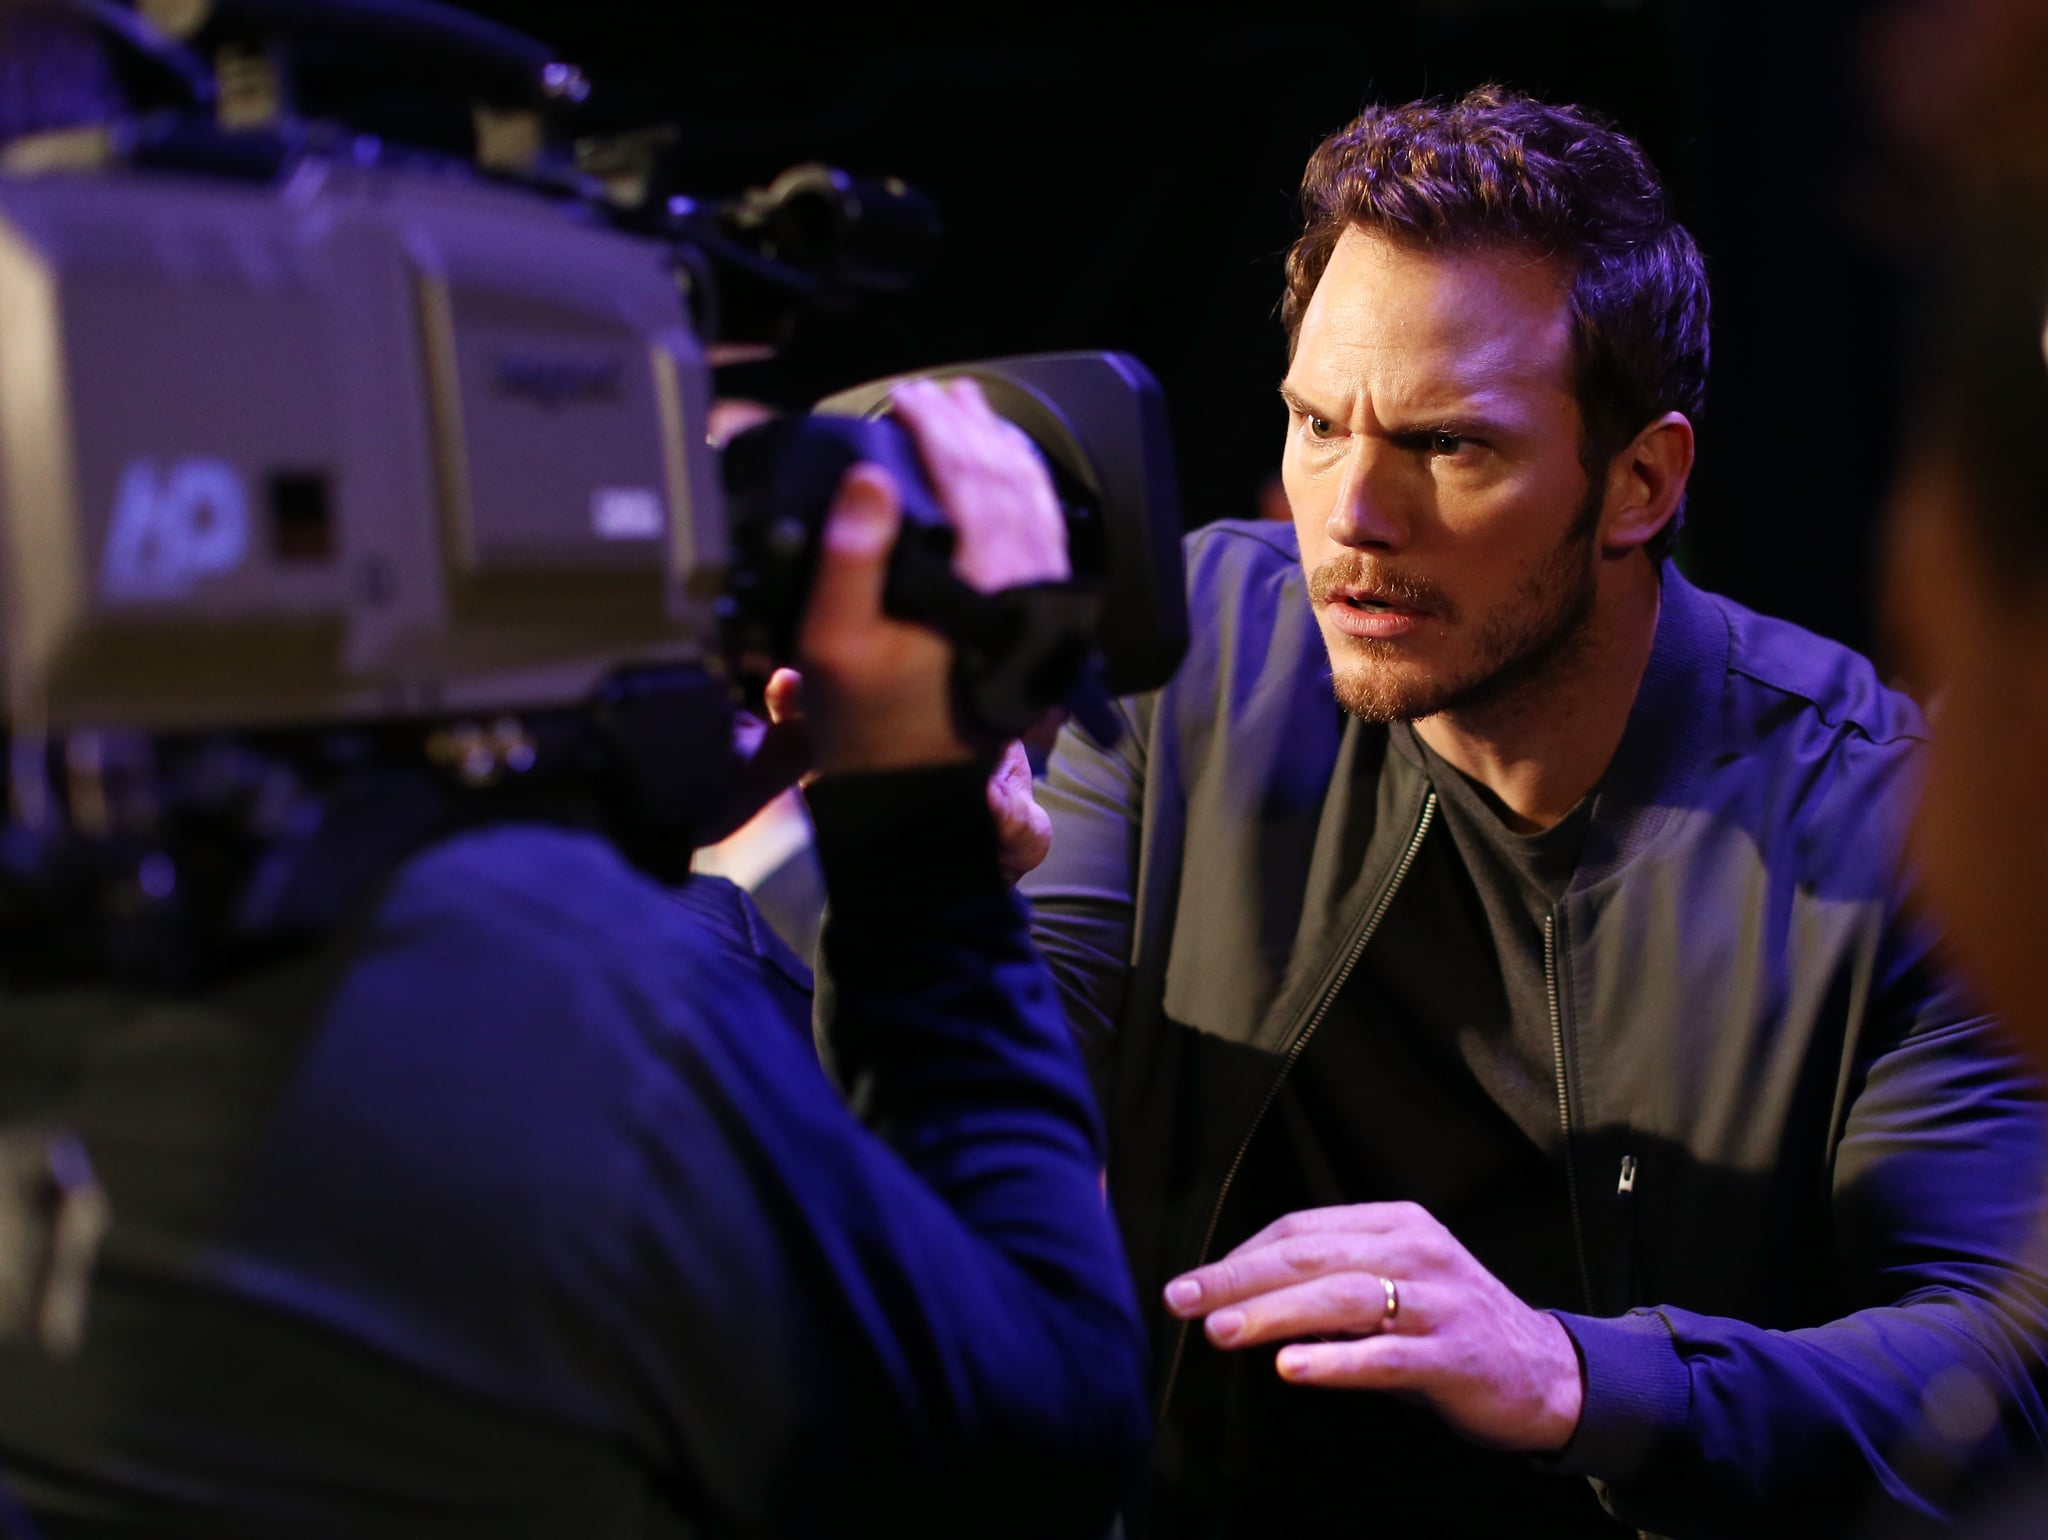 Chris Pratt got up close and personal with the camera.